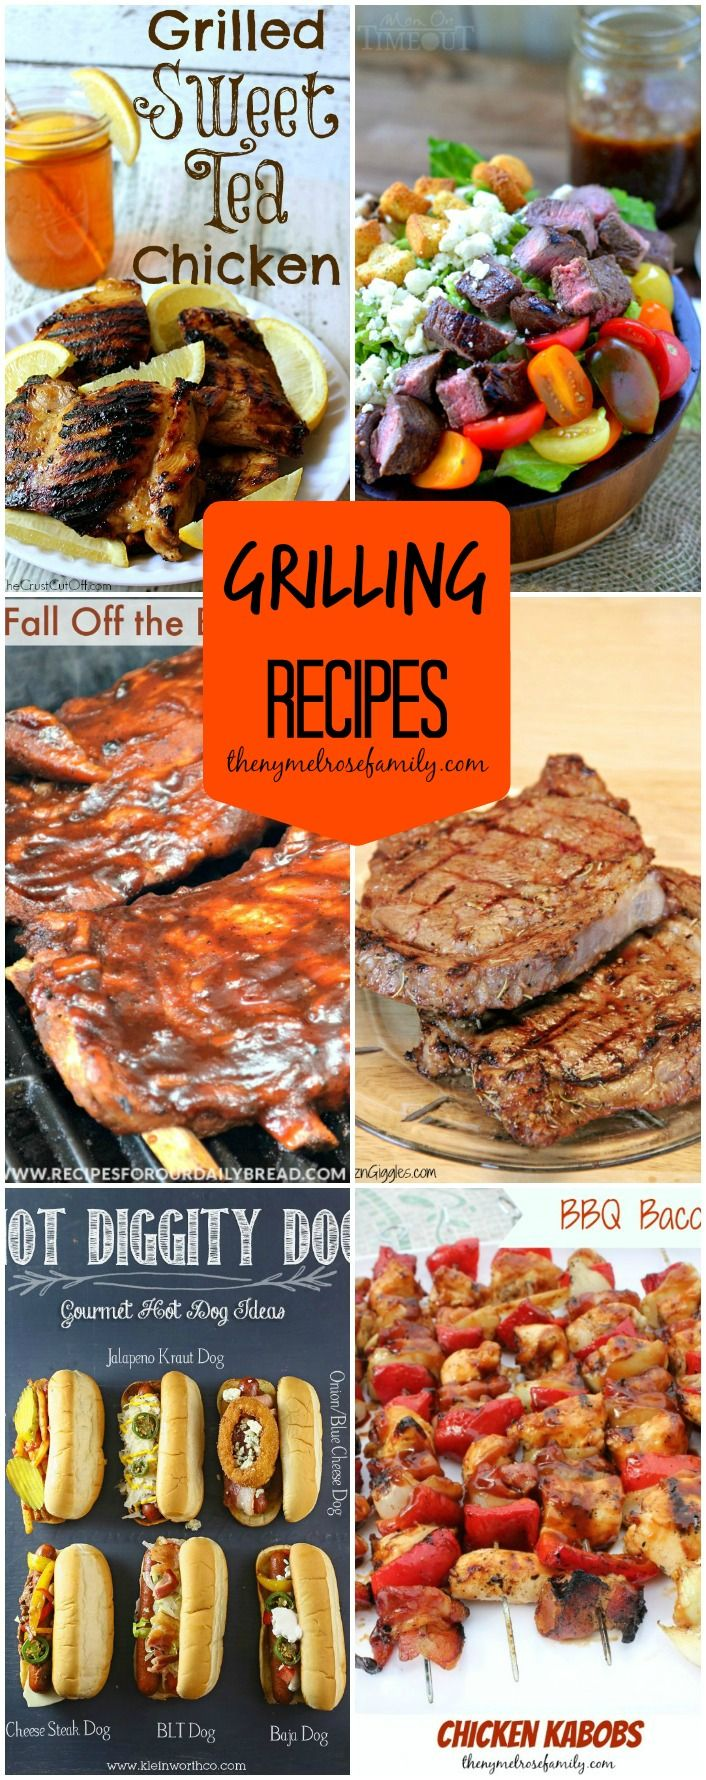 The BEST Grilling Recipes http://thenymelrosefamily.com/2014/05/best-grilling-recipes.html